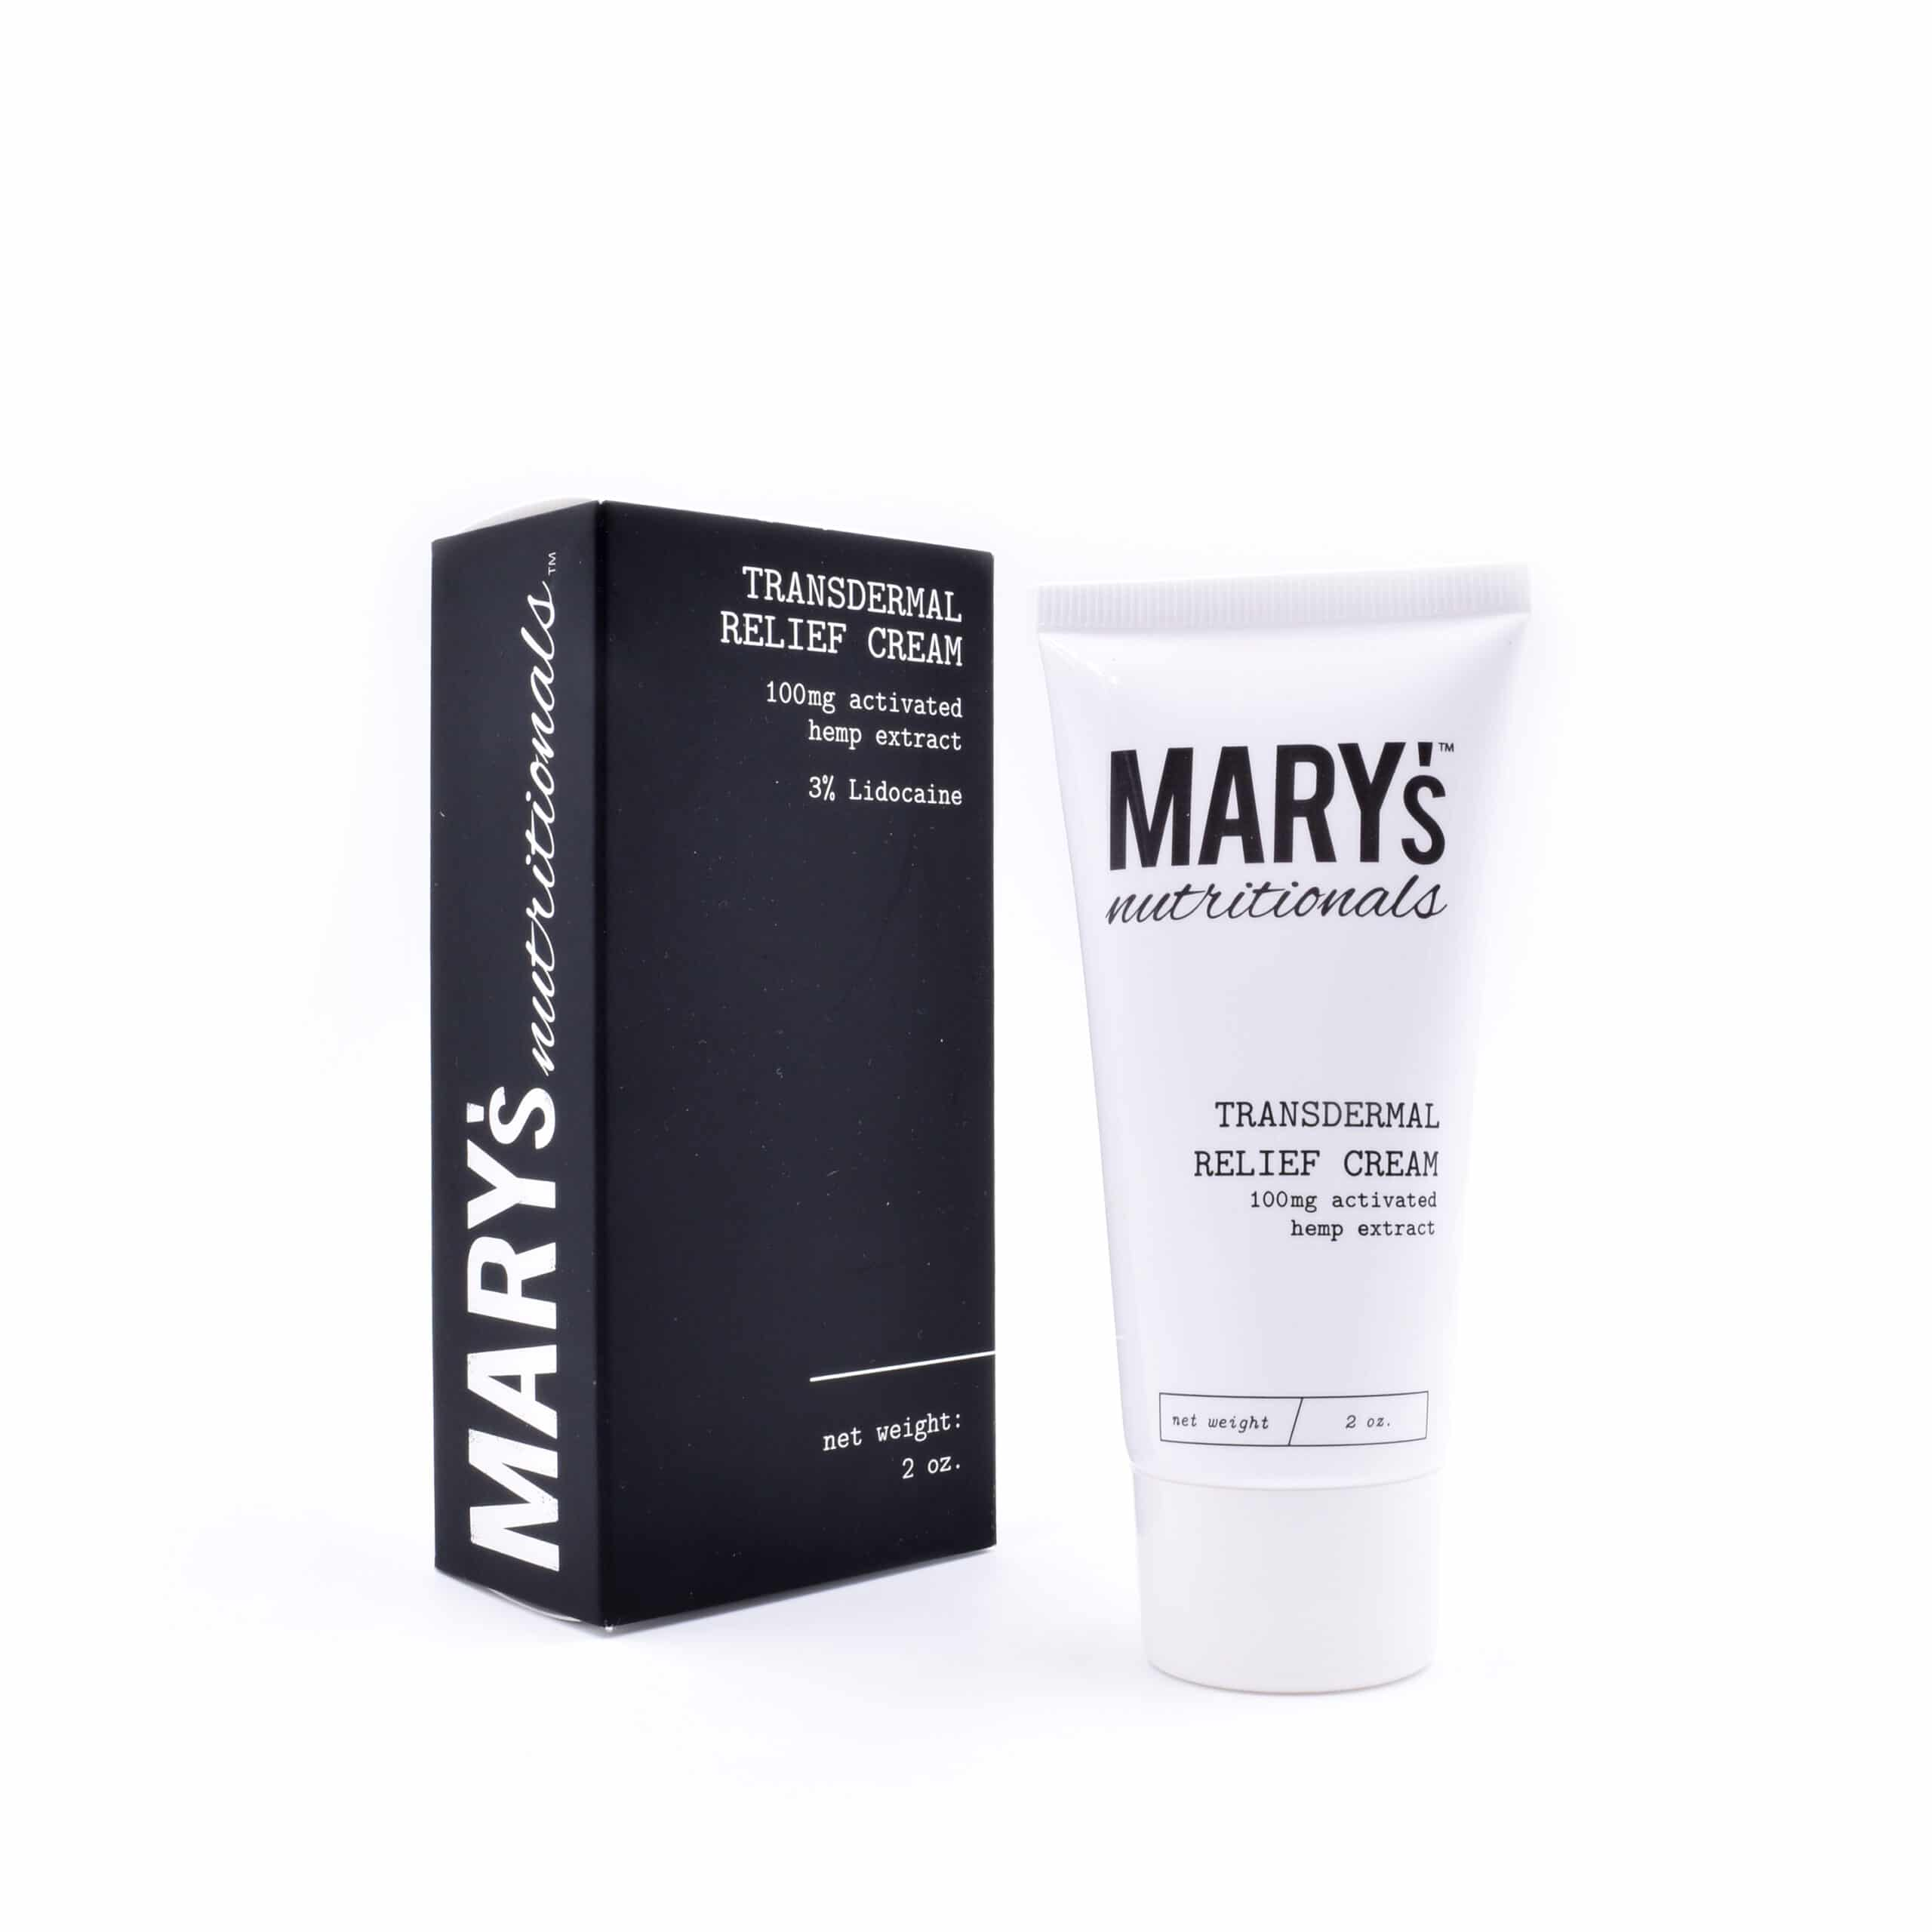 Transdermal Relief Cream – 100mg CBD – Mary's Nutritionals